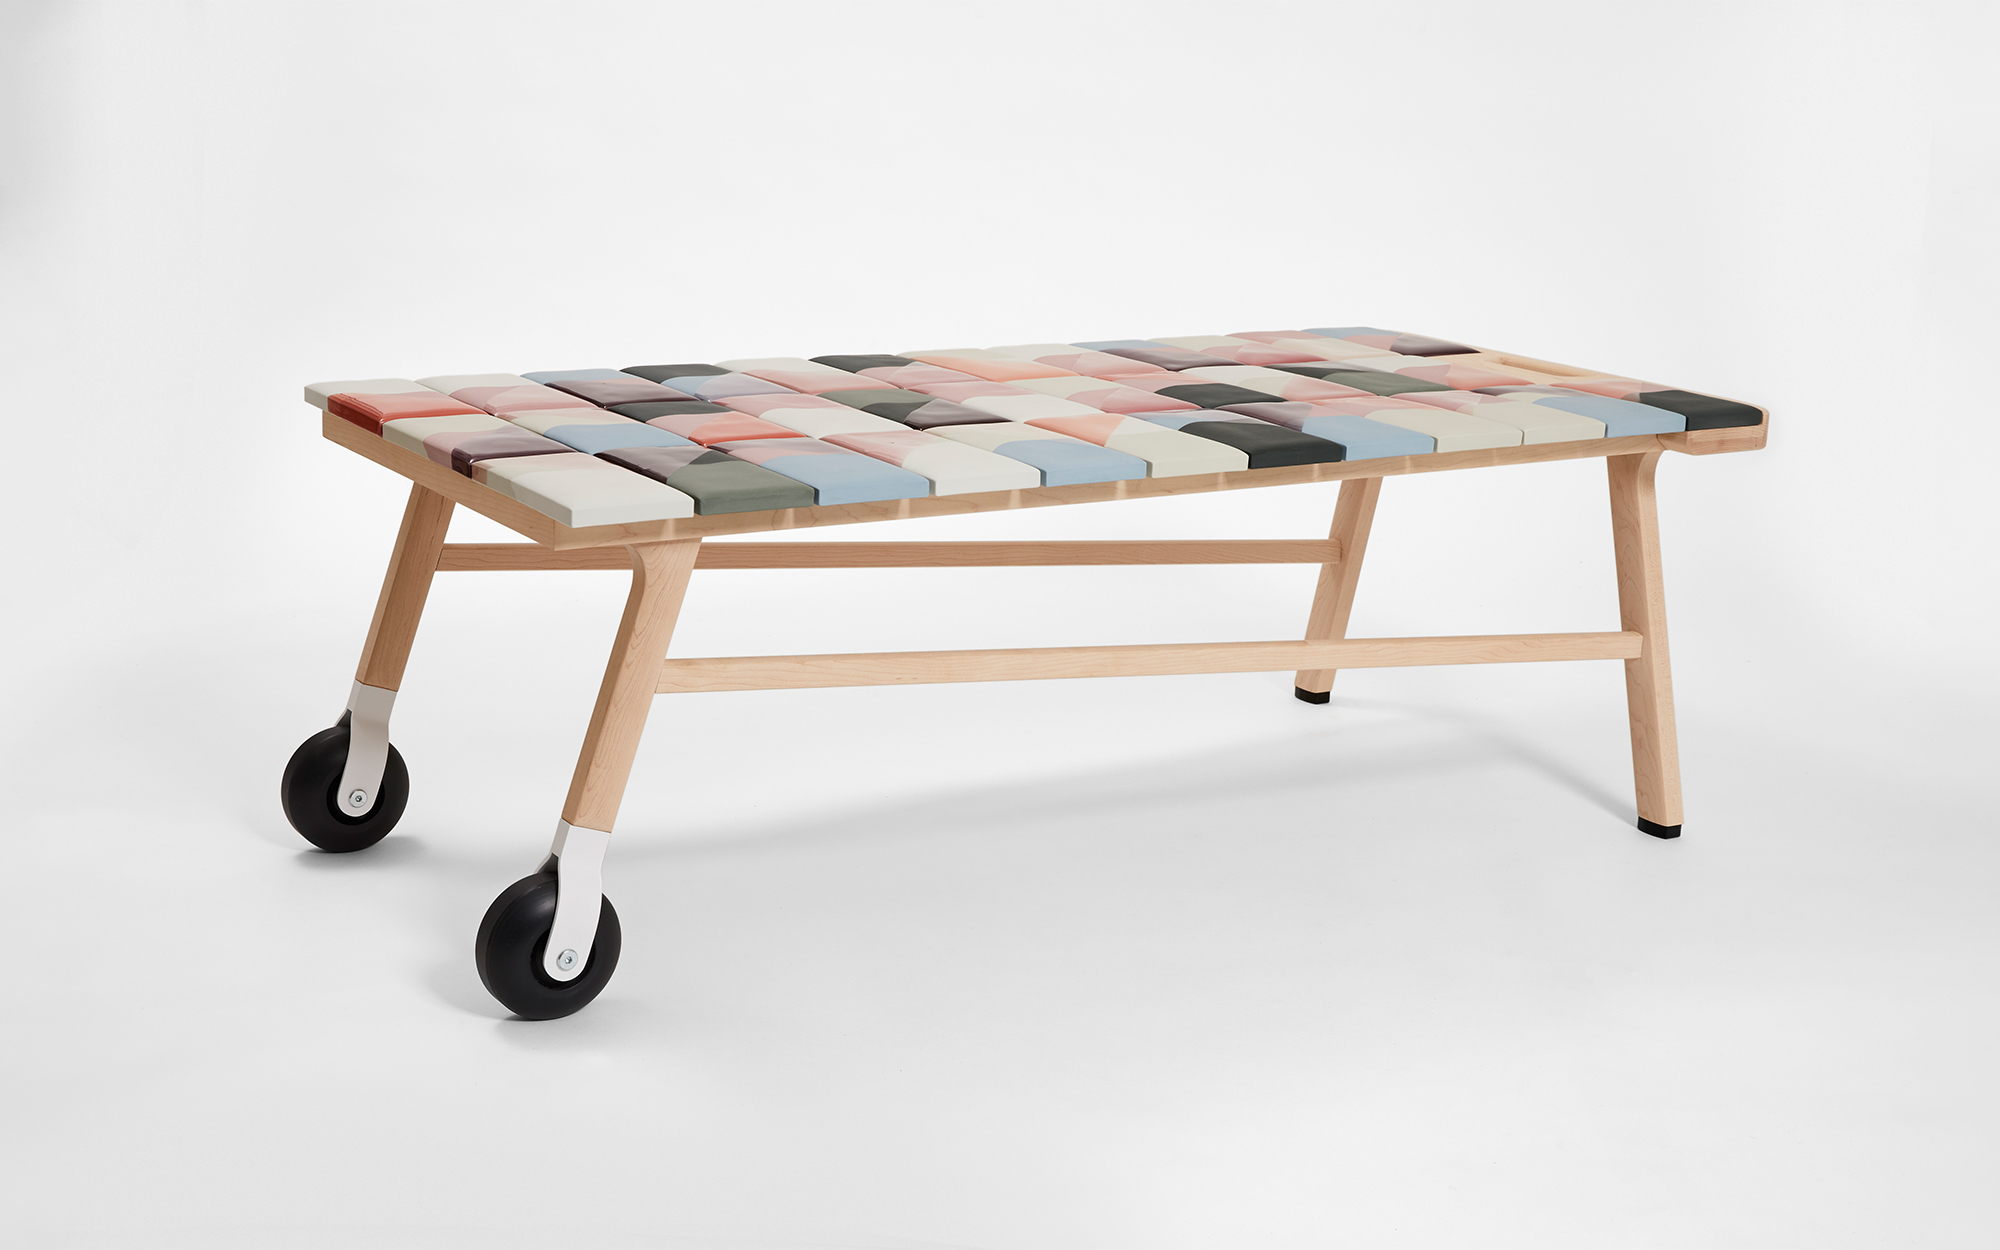 Hella Jongerius Tiles coffee table